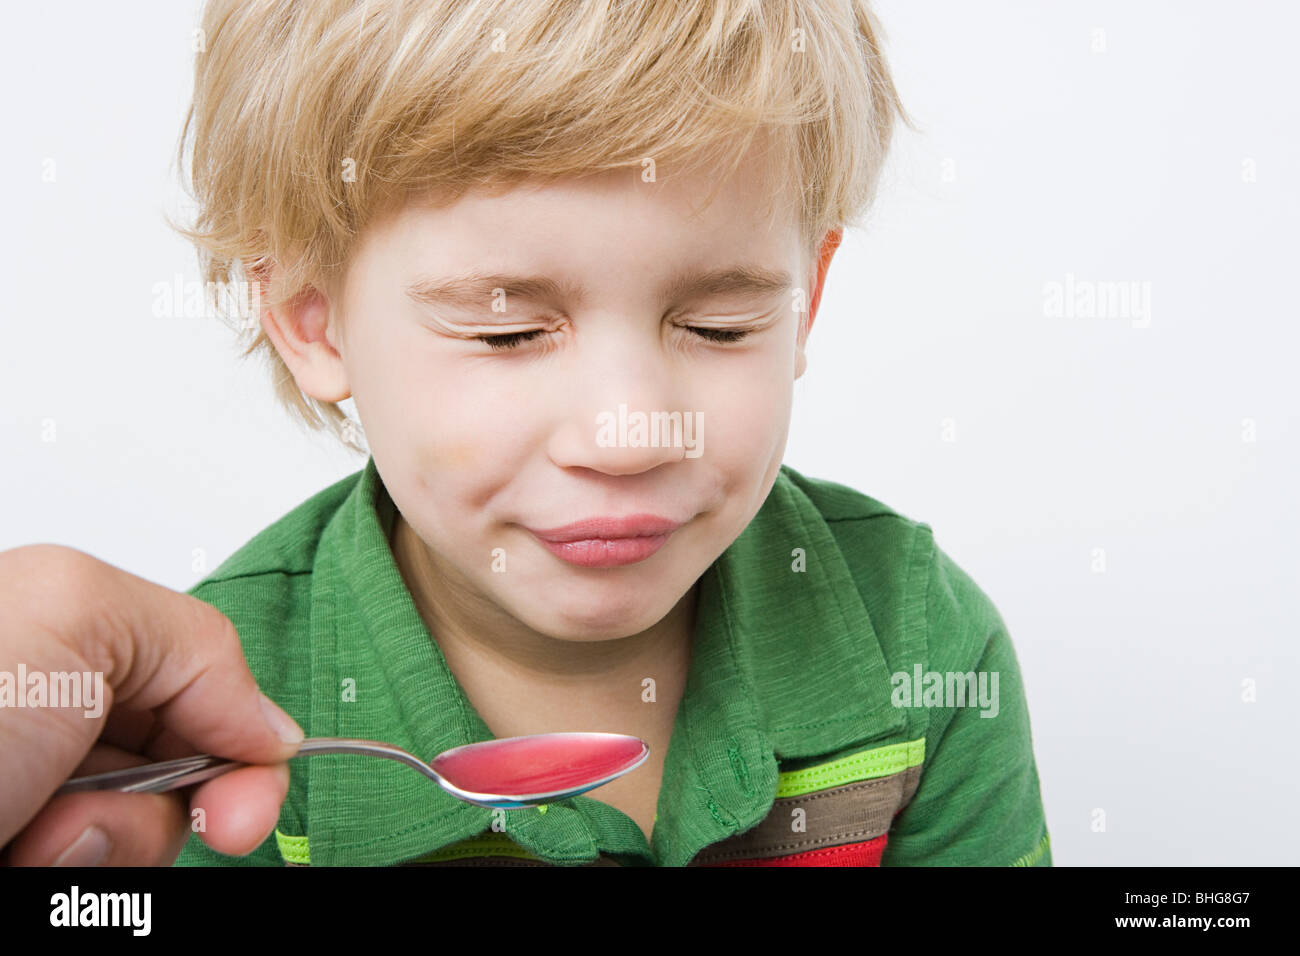 Boy and spoon of medicine - Stock Image